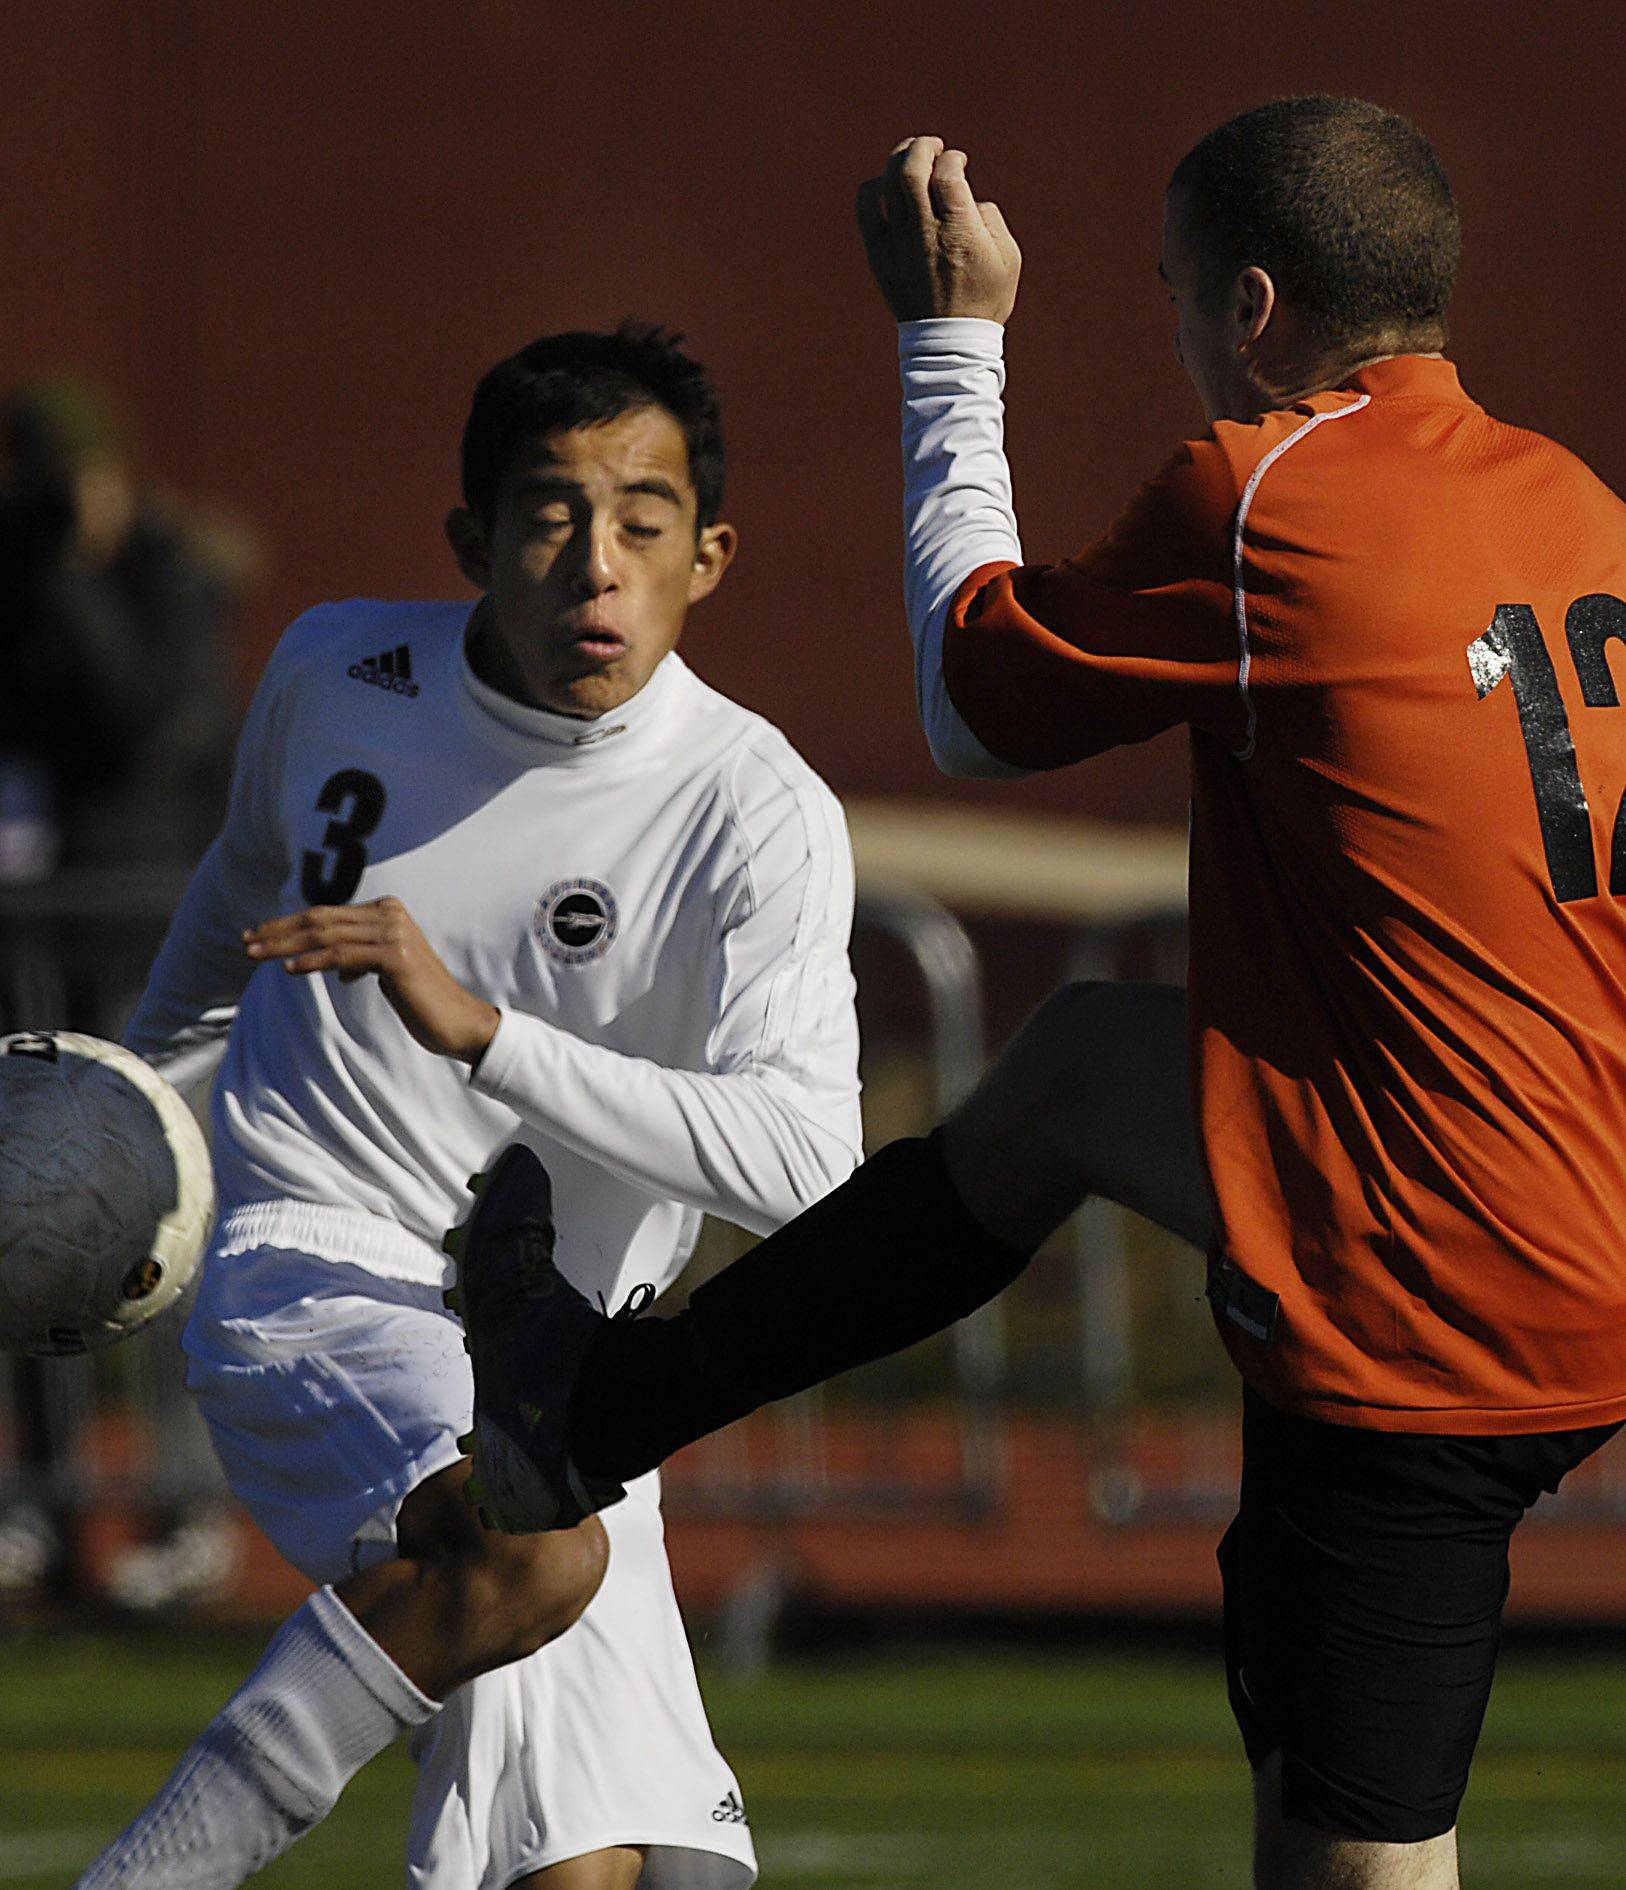 Burlington Central's Abelardo Castillo avoids the kick of Waterloo's Andrew Polacek in the third place game of the state tournament in Naperville Saturday.